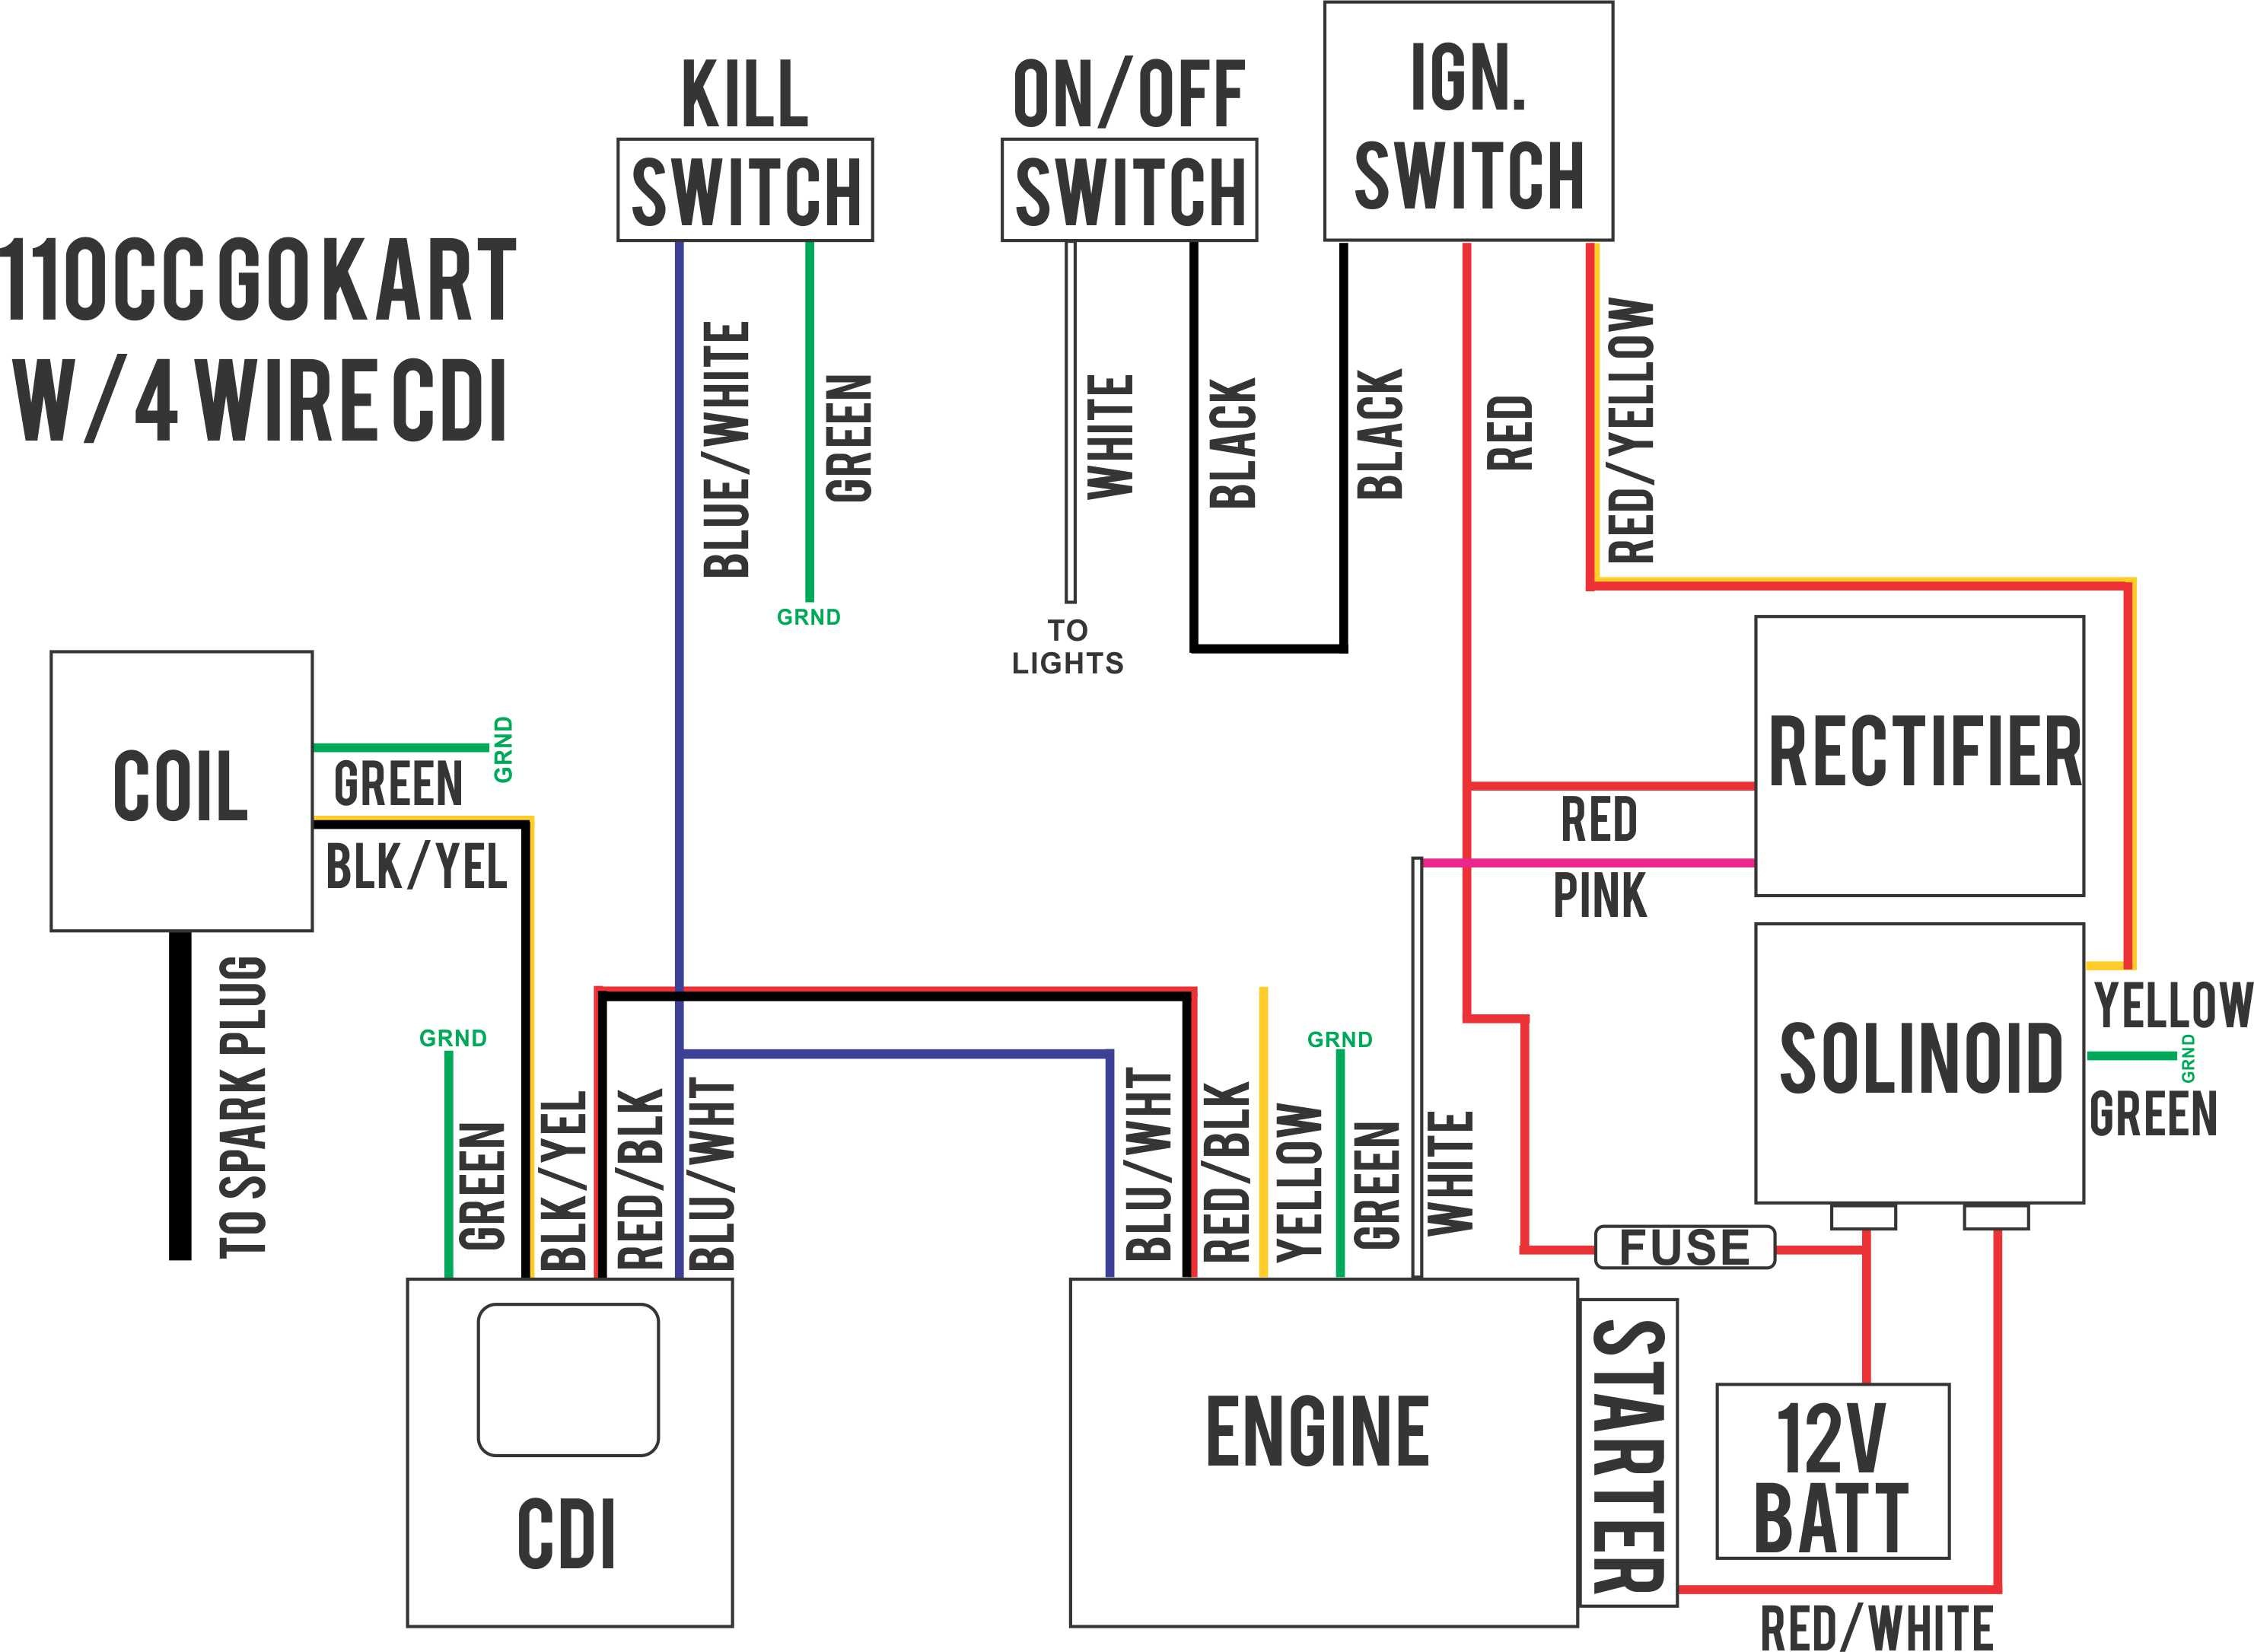 Atv Hand Warmer Wiring Diagram | Wiring Diagram Hand Warmer Wiring Diagram Atv on